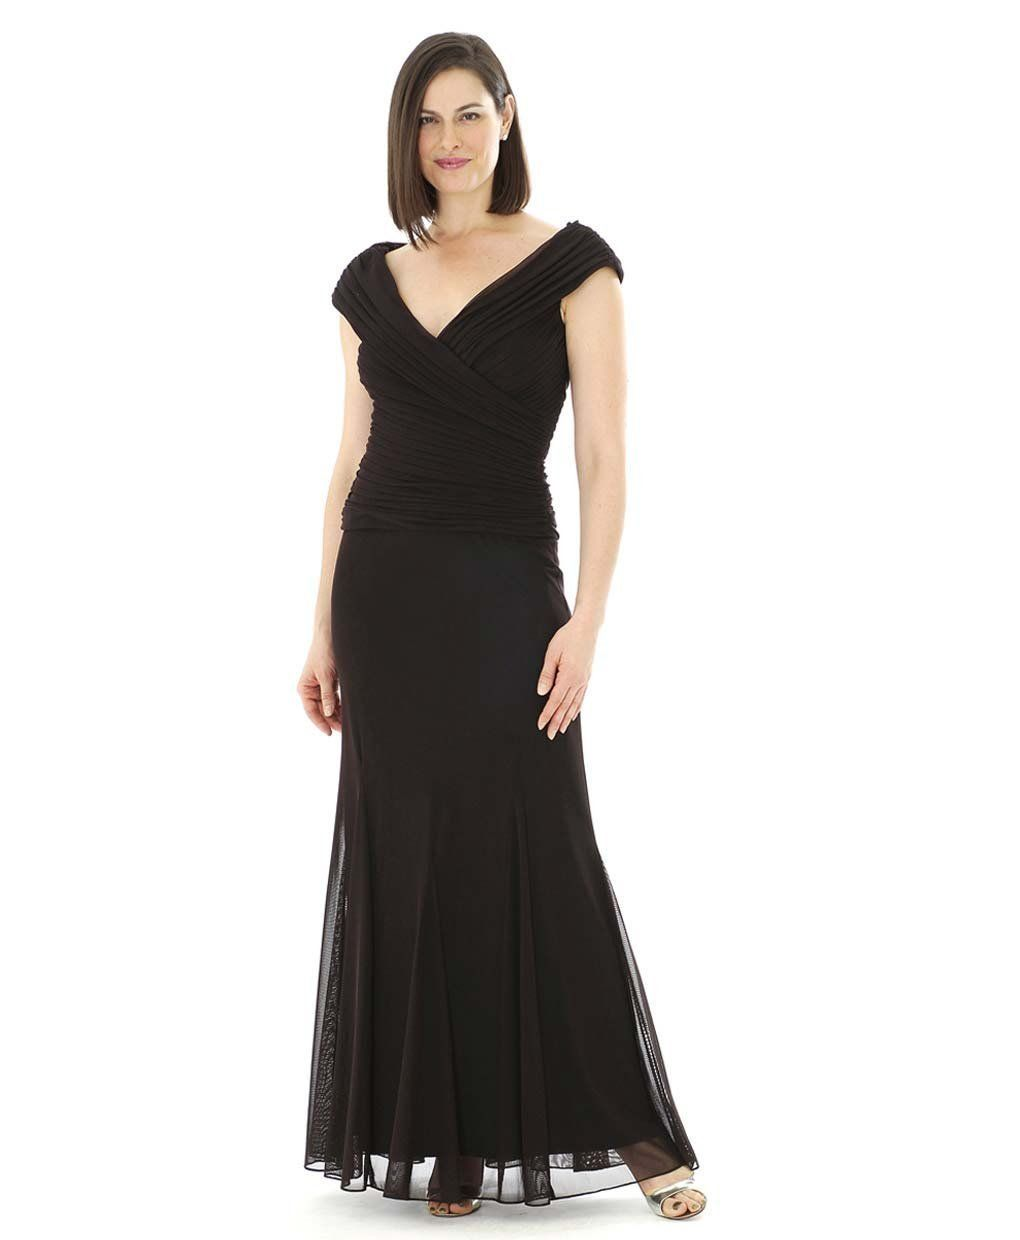 Black Tie Gown | Black Tie/Formal Gowns | Pinterest | Black tie gown ...